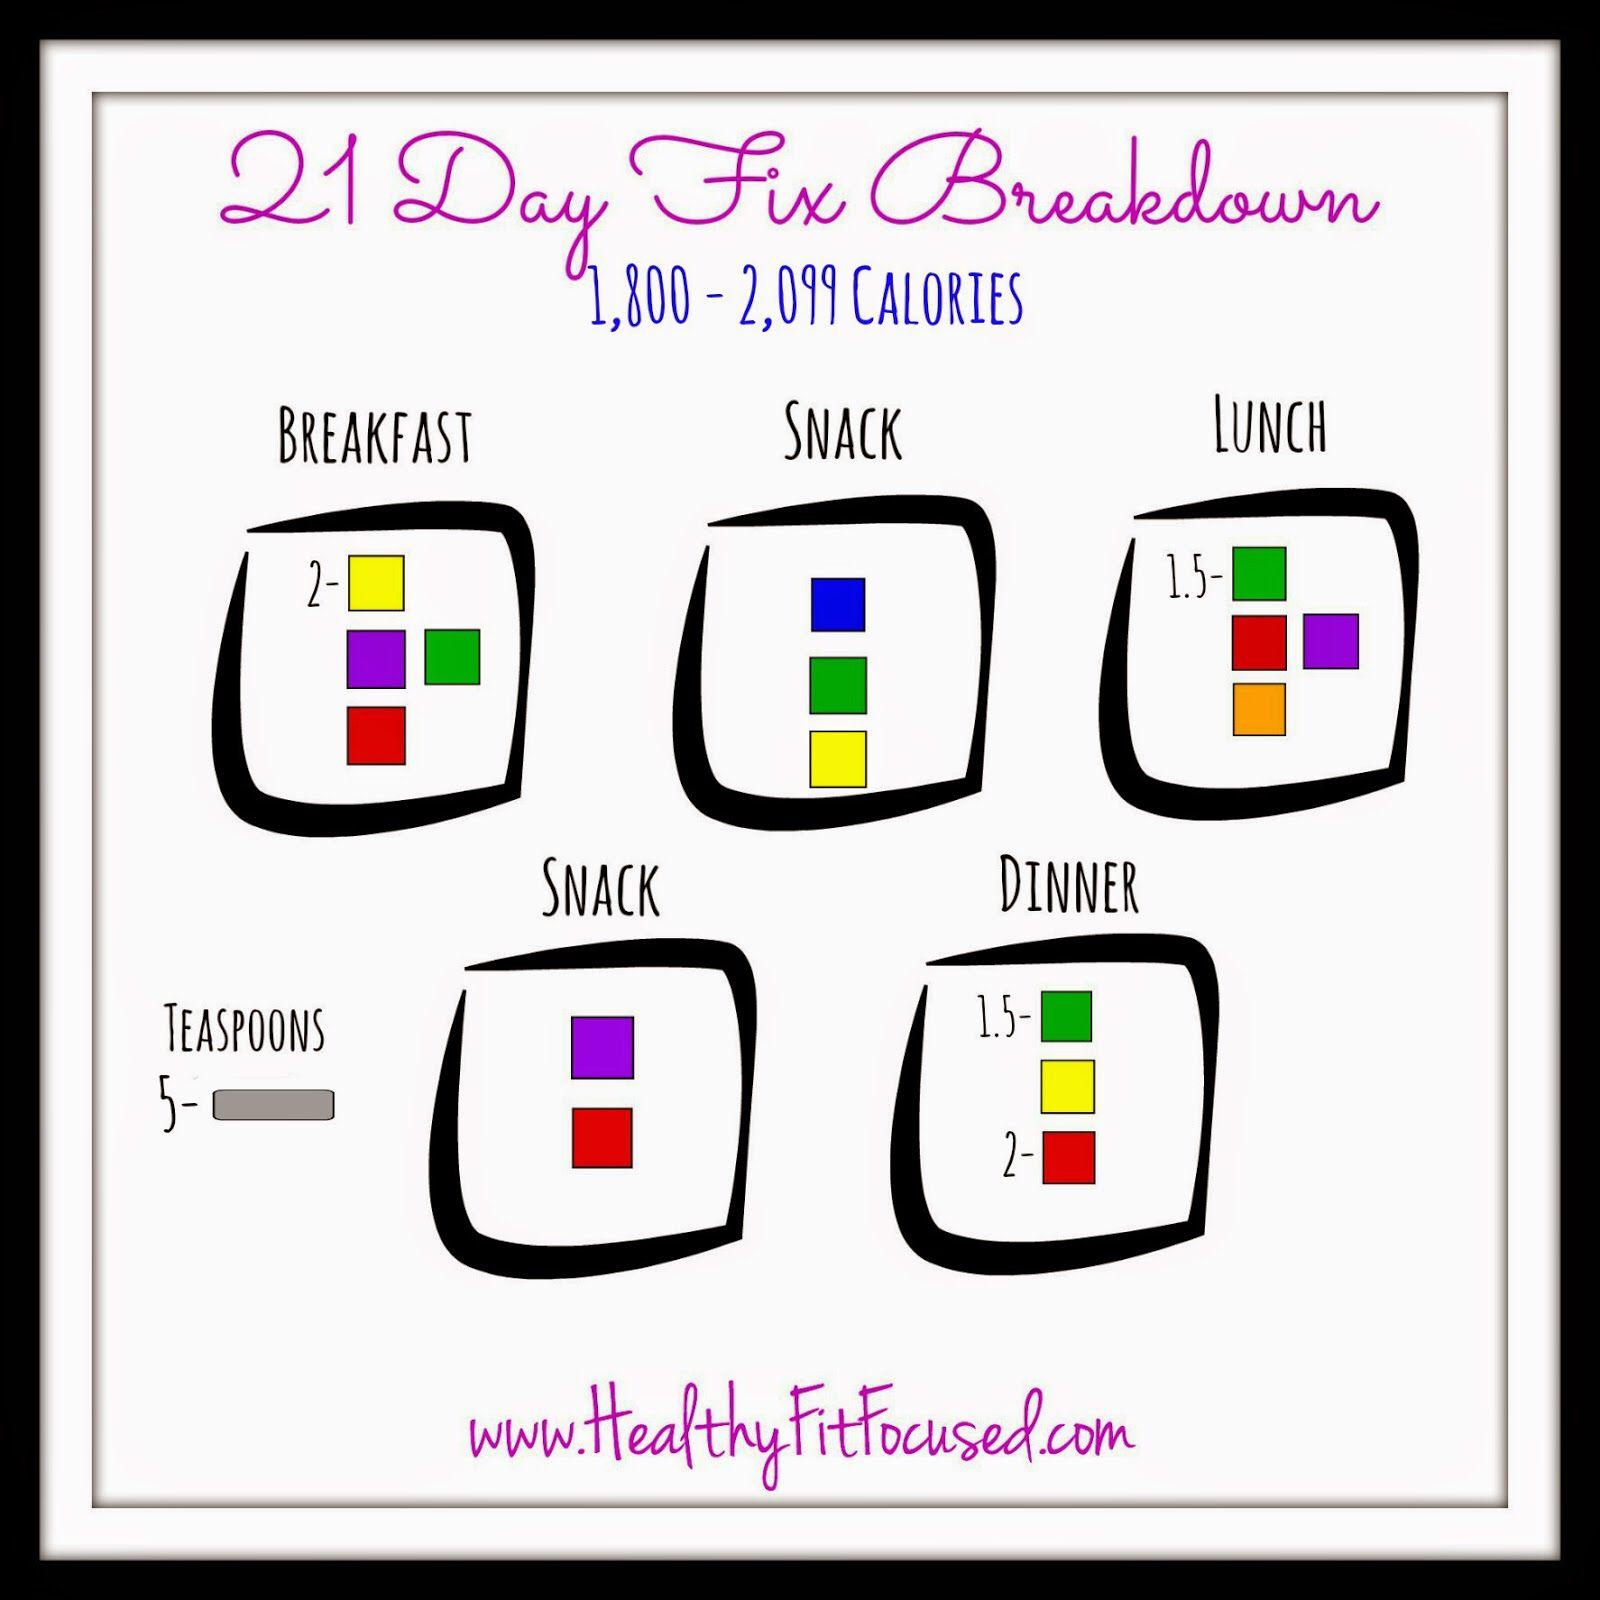 21 Day Fix Container Sizes 21 day fix meal breakdown